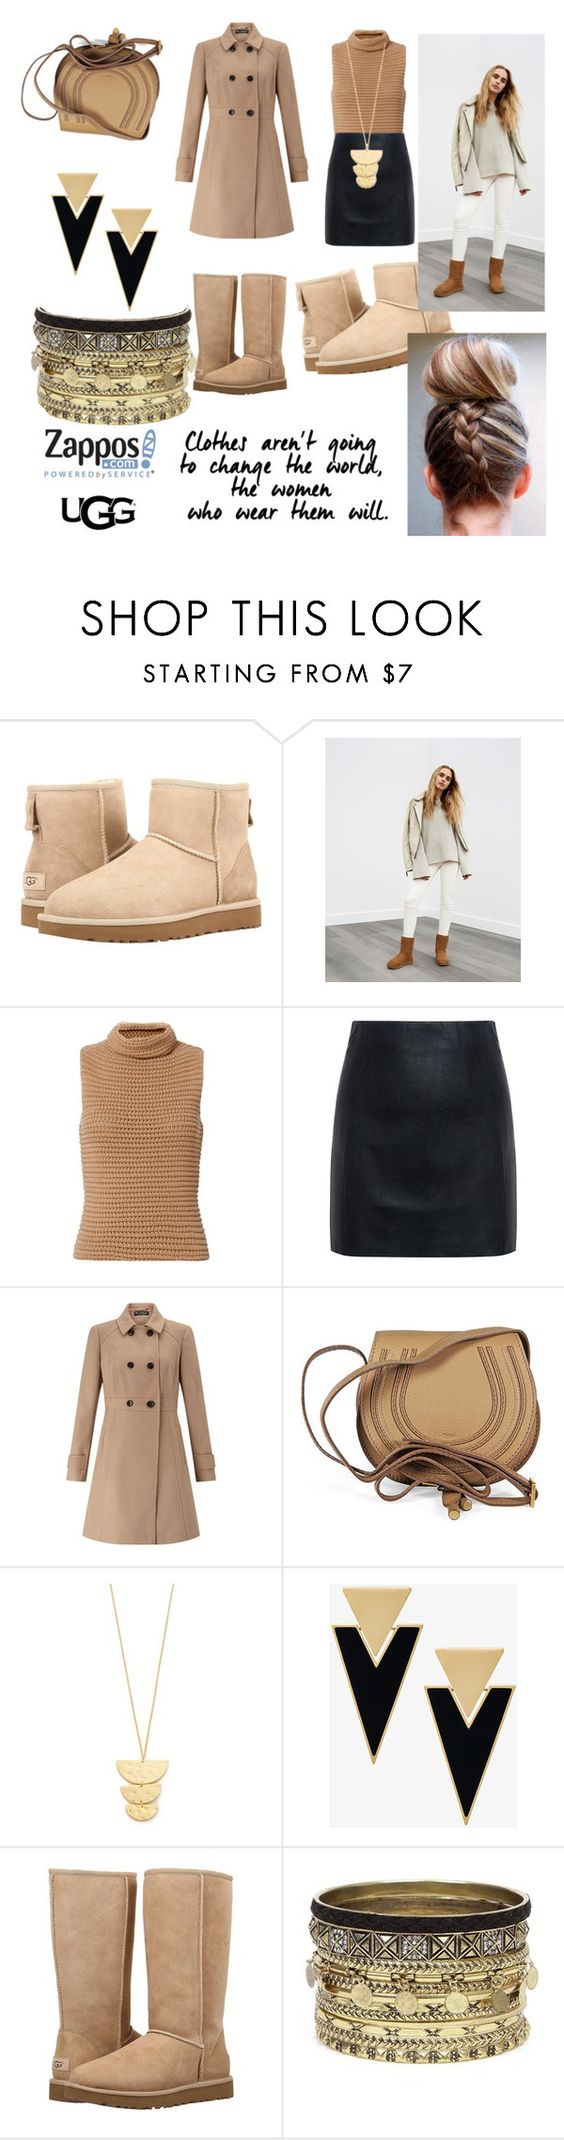 """The Icon Perfected: UGG Classic II Contest Entry"" by anniegaf ❤ liked on Polyvore featuring UGG Australia, UGG, Exclusive for Intermix, McQ by Alexander McQueen, Miss Selfridge, Chloé, Gorjana, Yves Saint Laurent, Daytrip and ugg"